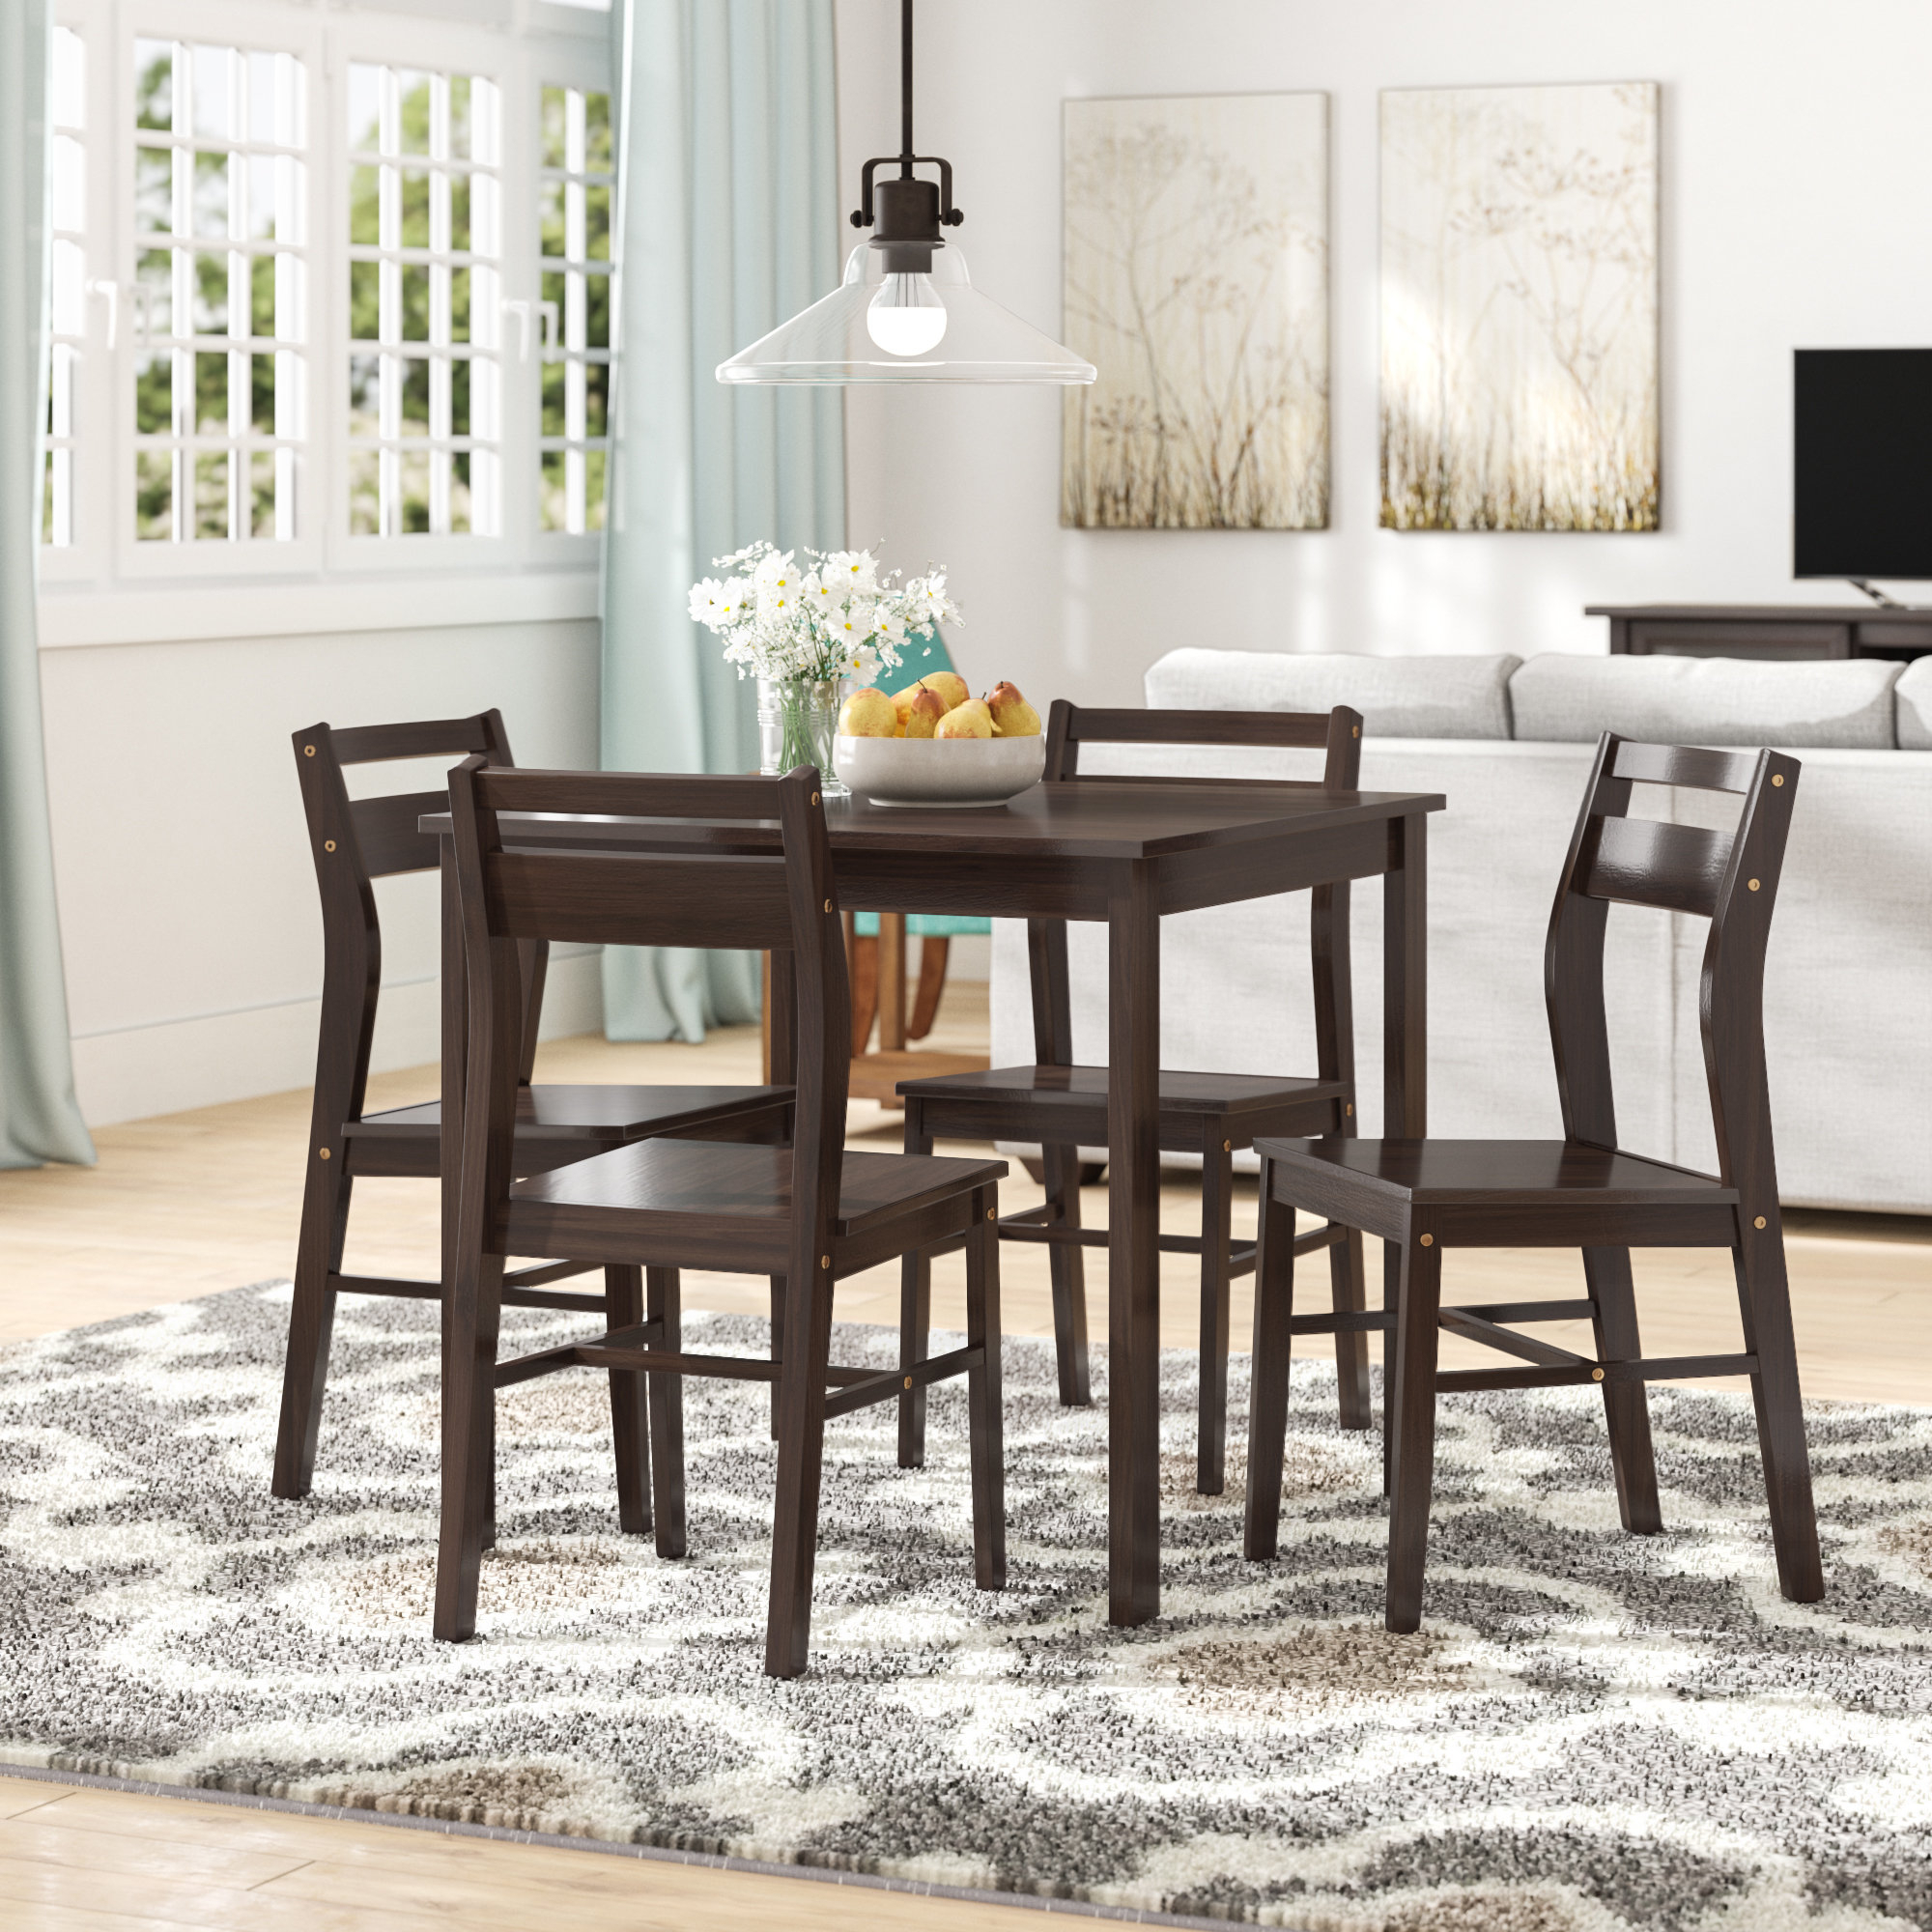 Hersom 5 Piece Dining Set Pertaining To Most Up To Date Mukai 5 Piece Dining Sets (View 9 of 20)